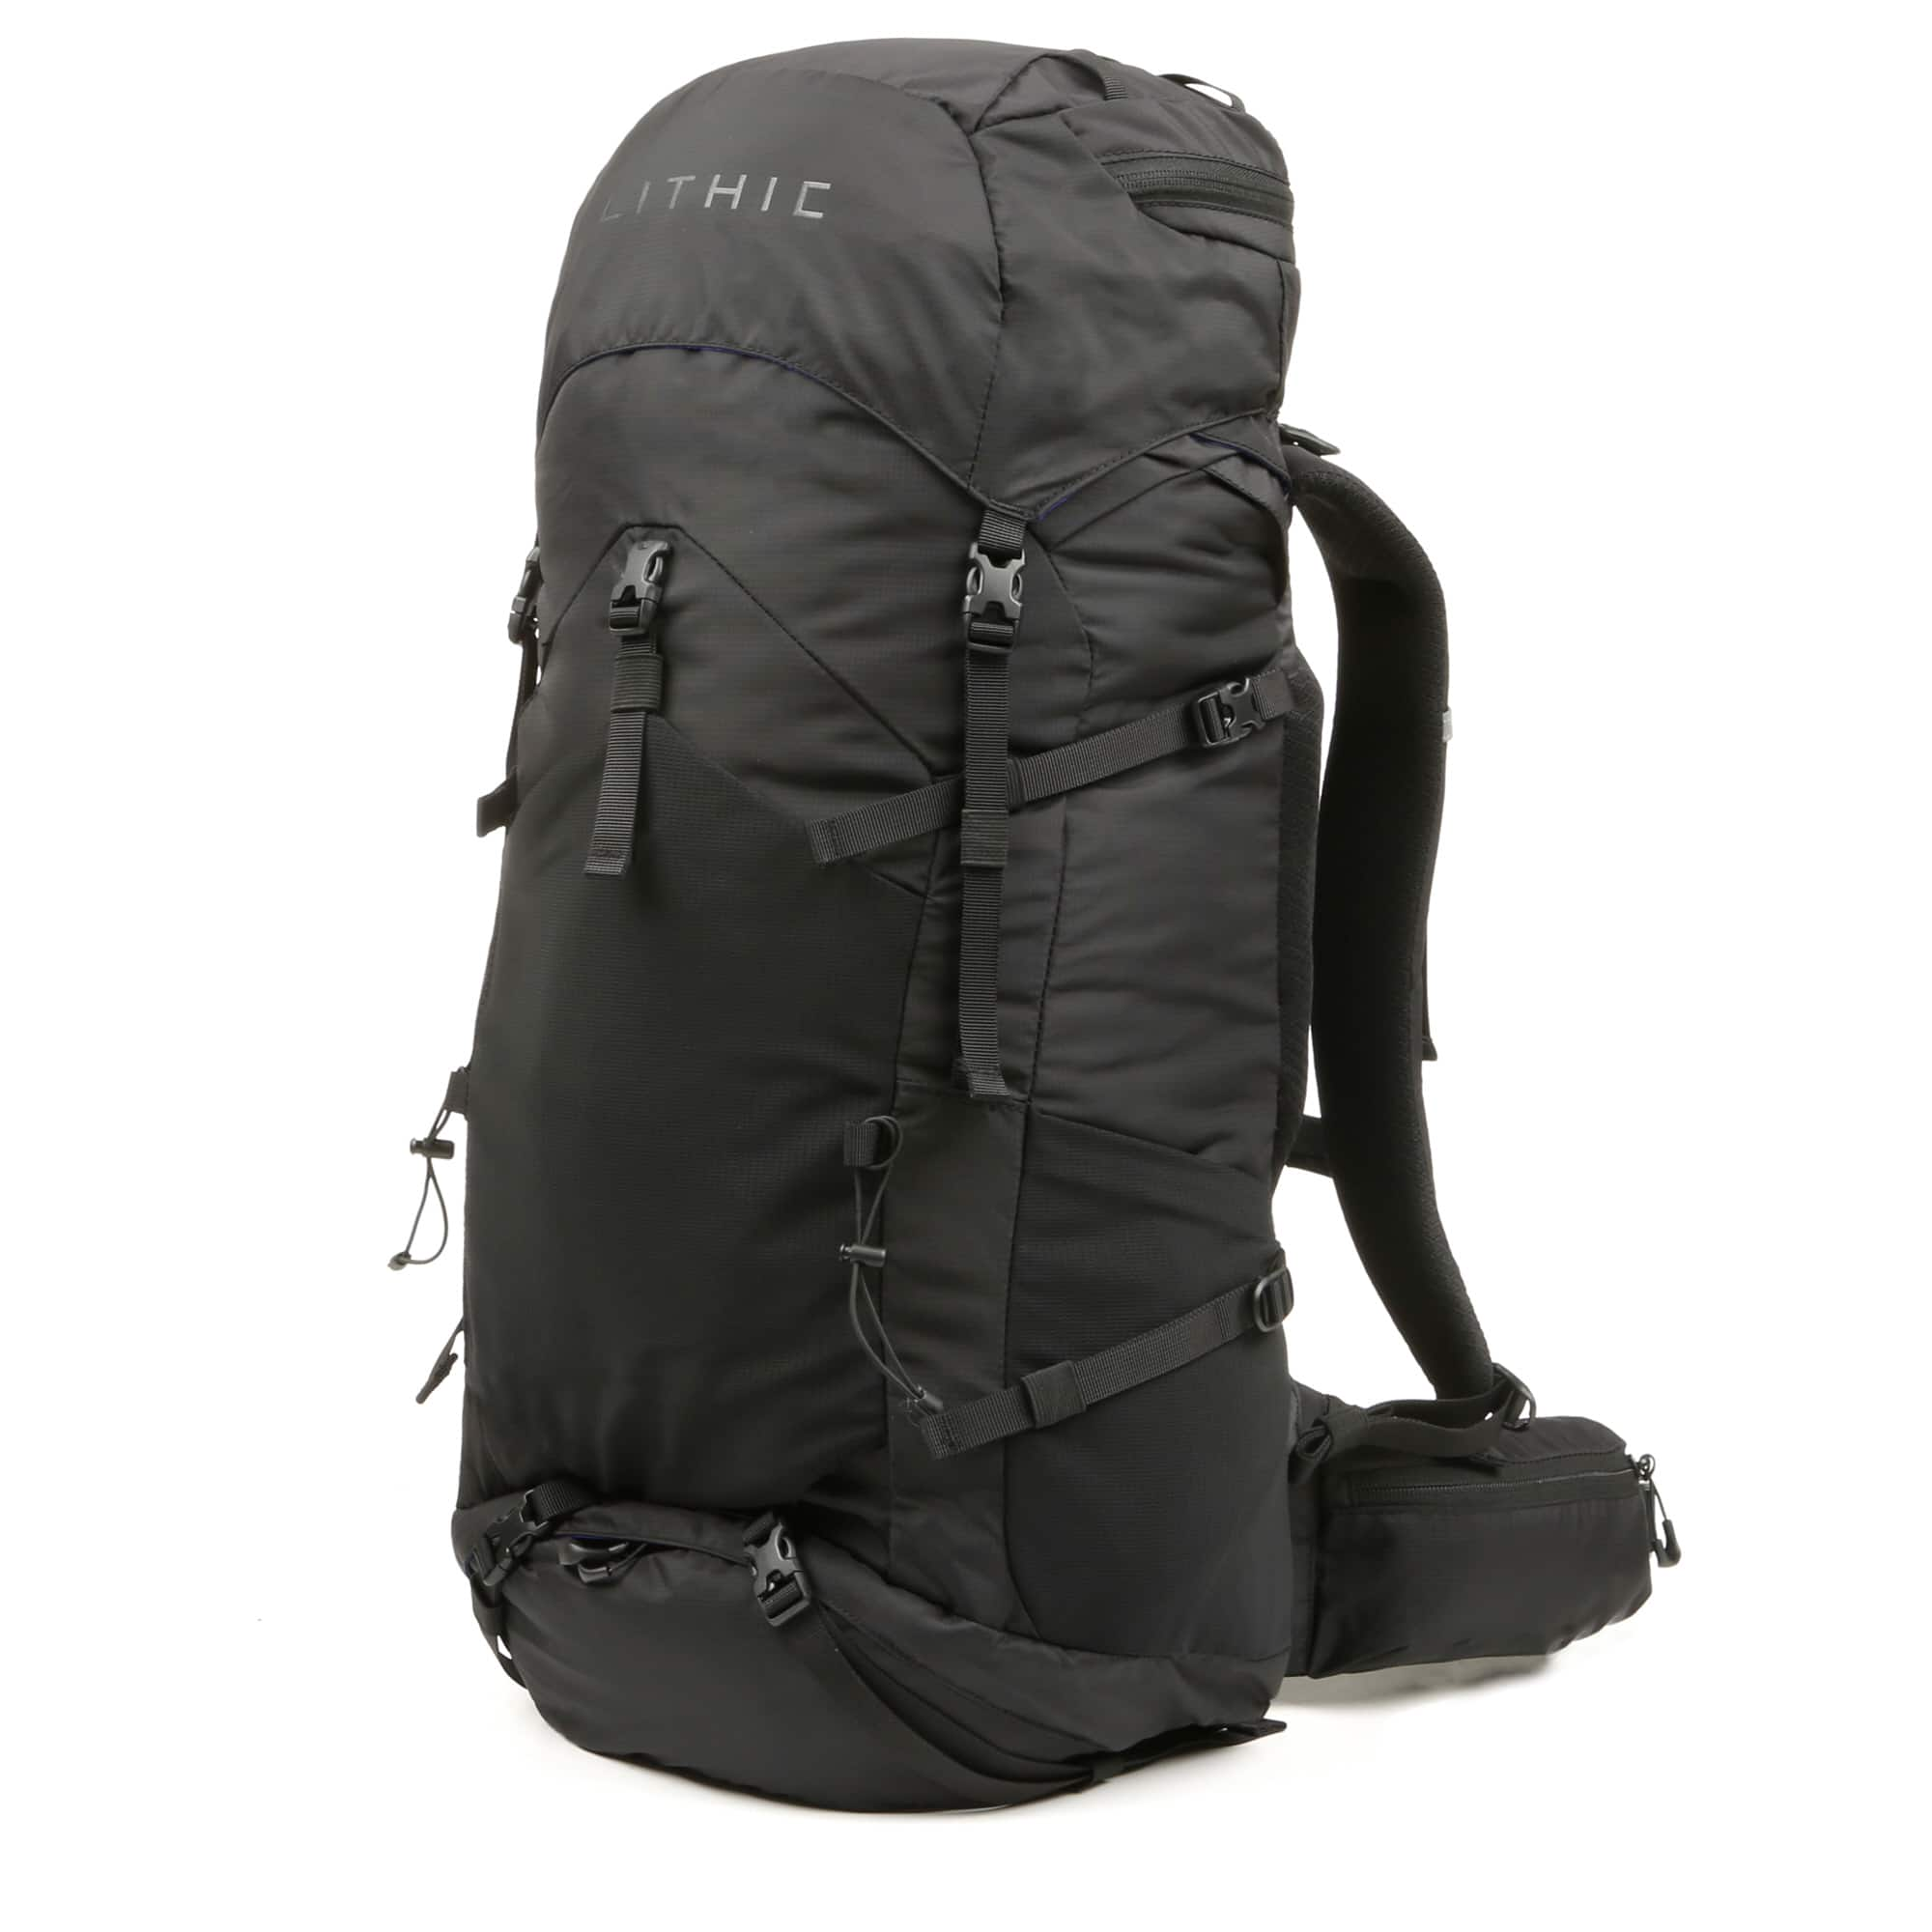 Lithic 40L Adult Hiking Backpack (Black) $24.13 + Free Shipping on Orders $35+